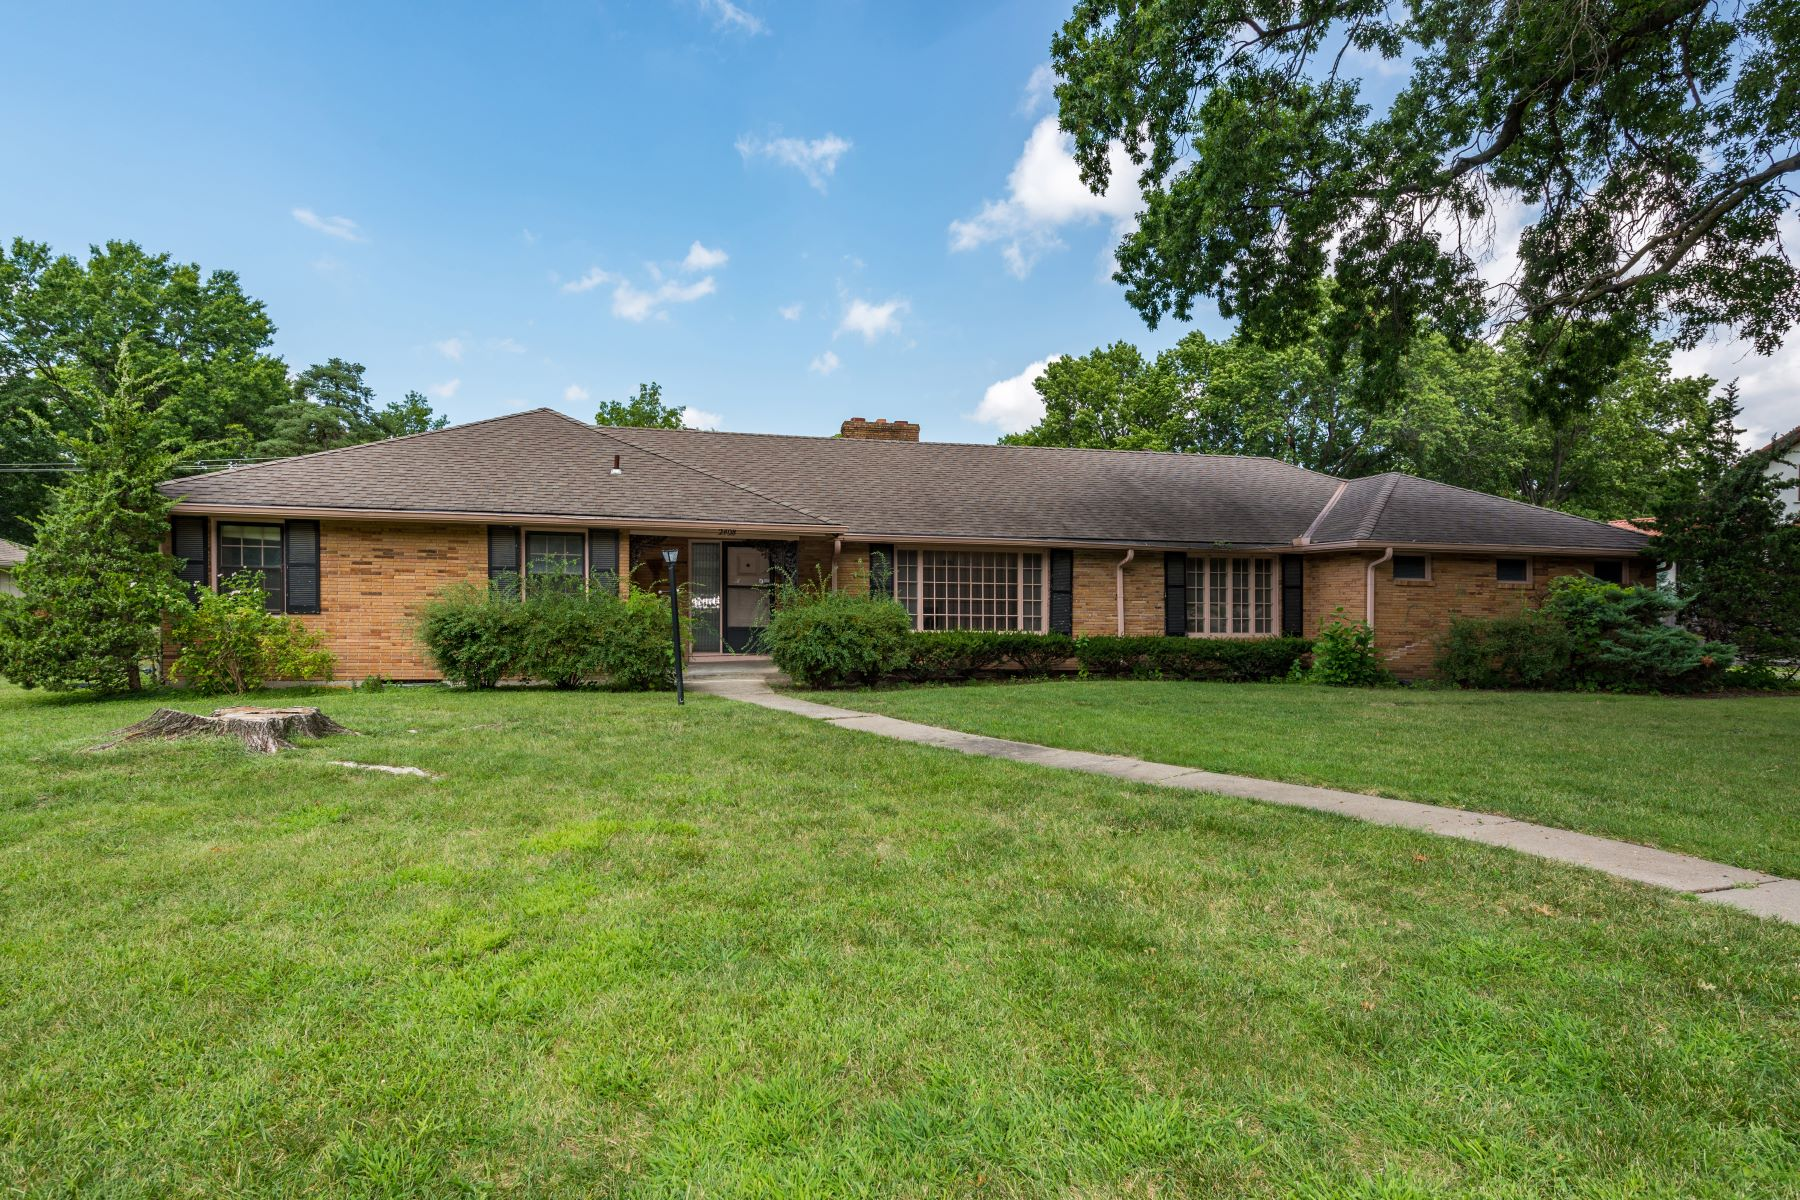 Single Family Homes for Active at Incredible Opportunity in Sagamore Hills 2408 w 69th Street Mission Hills, Kansas 66208 United States